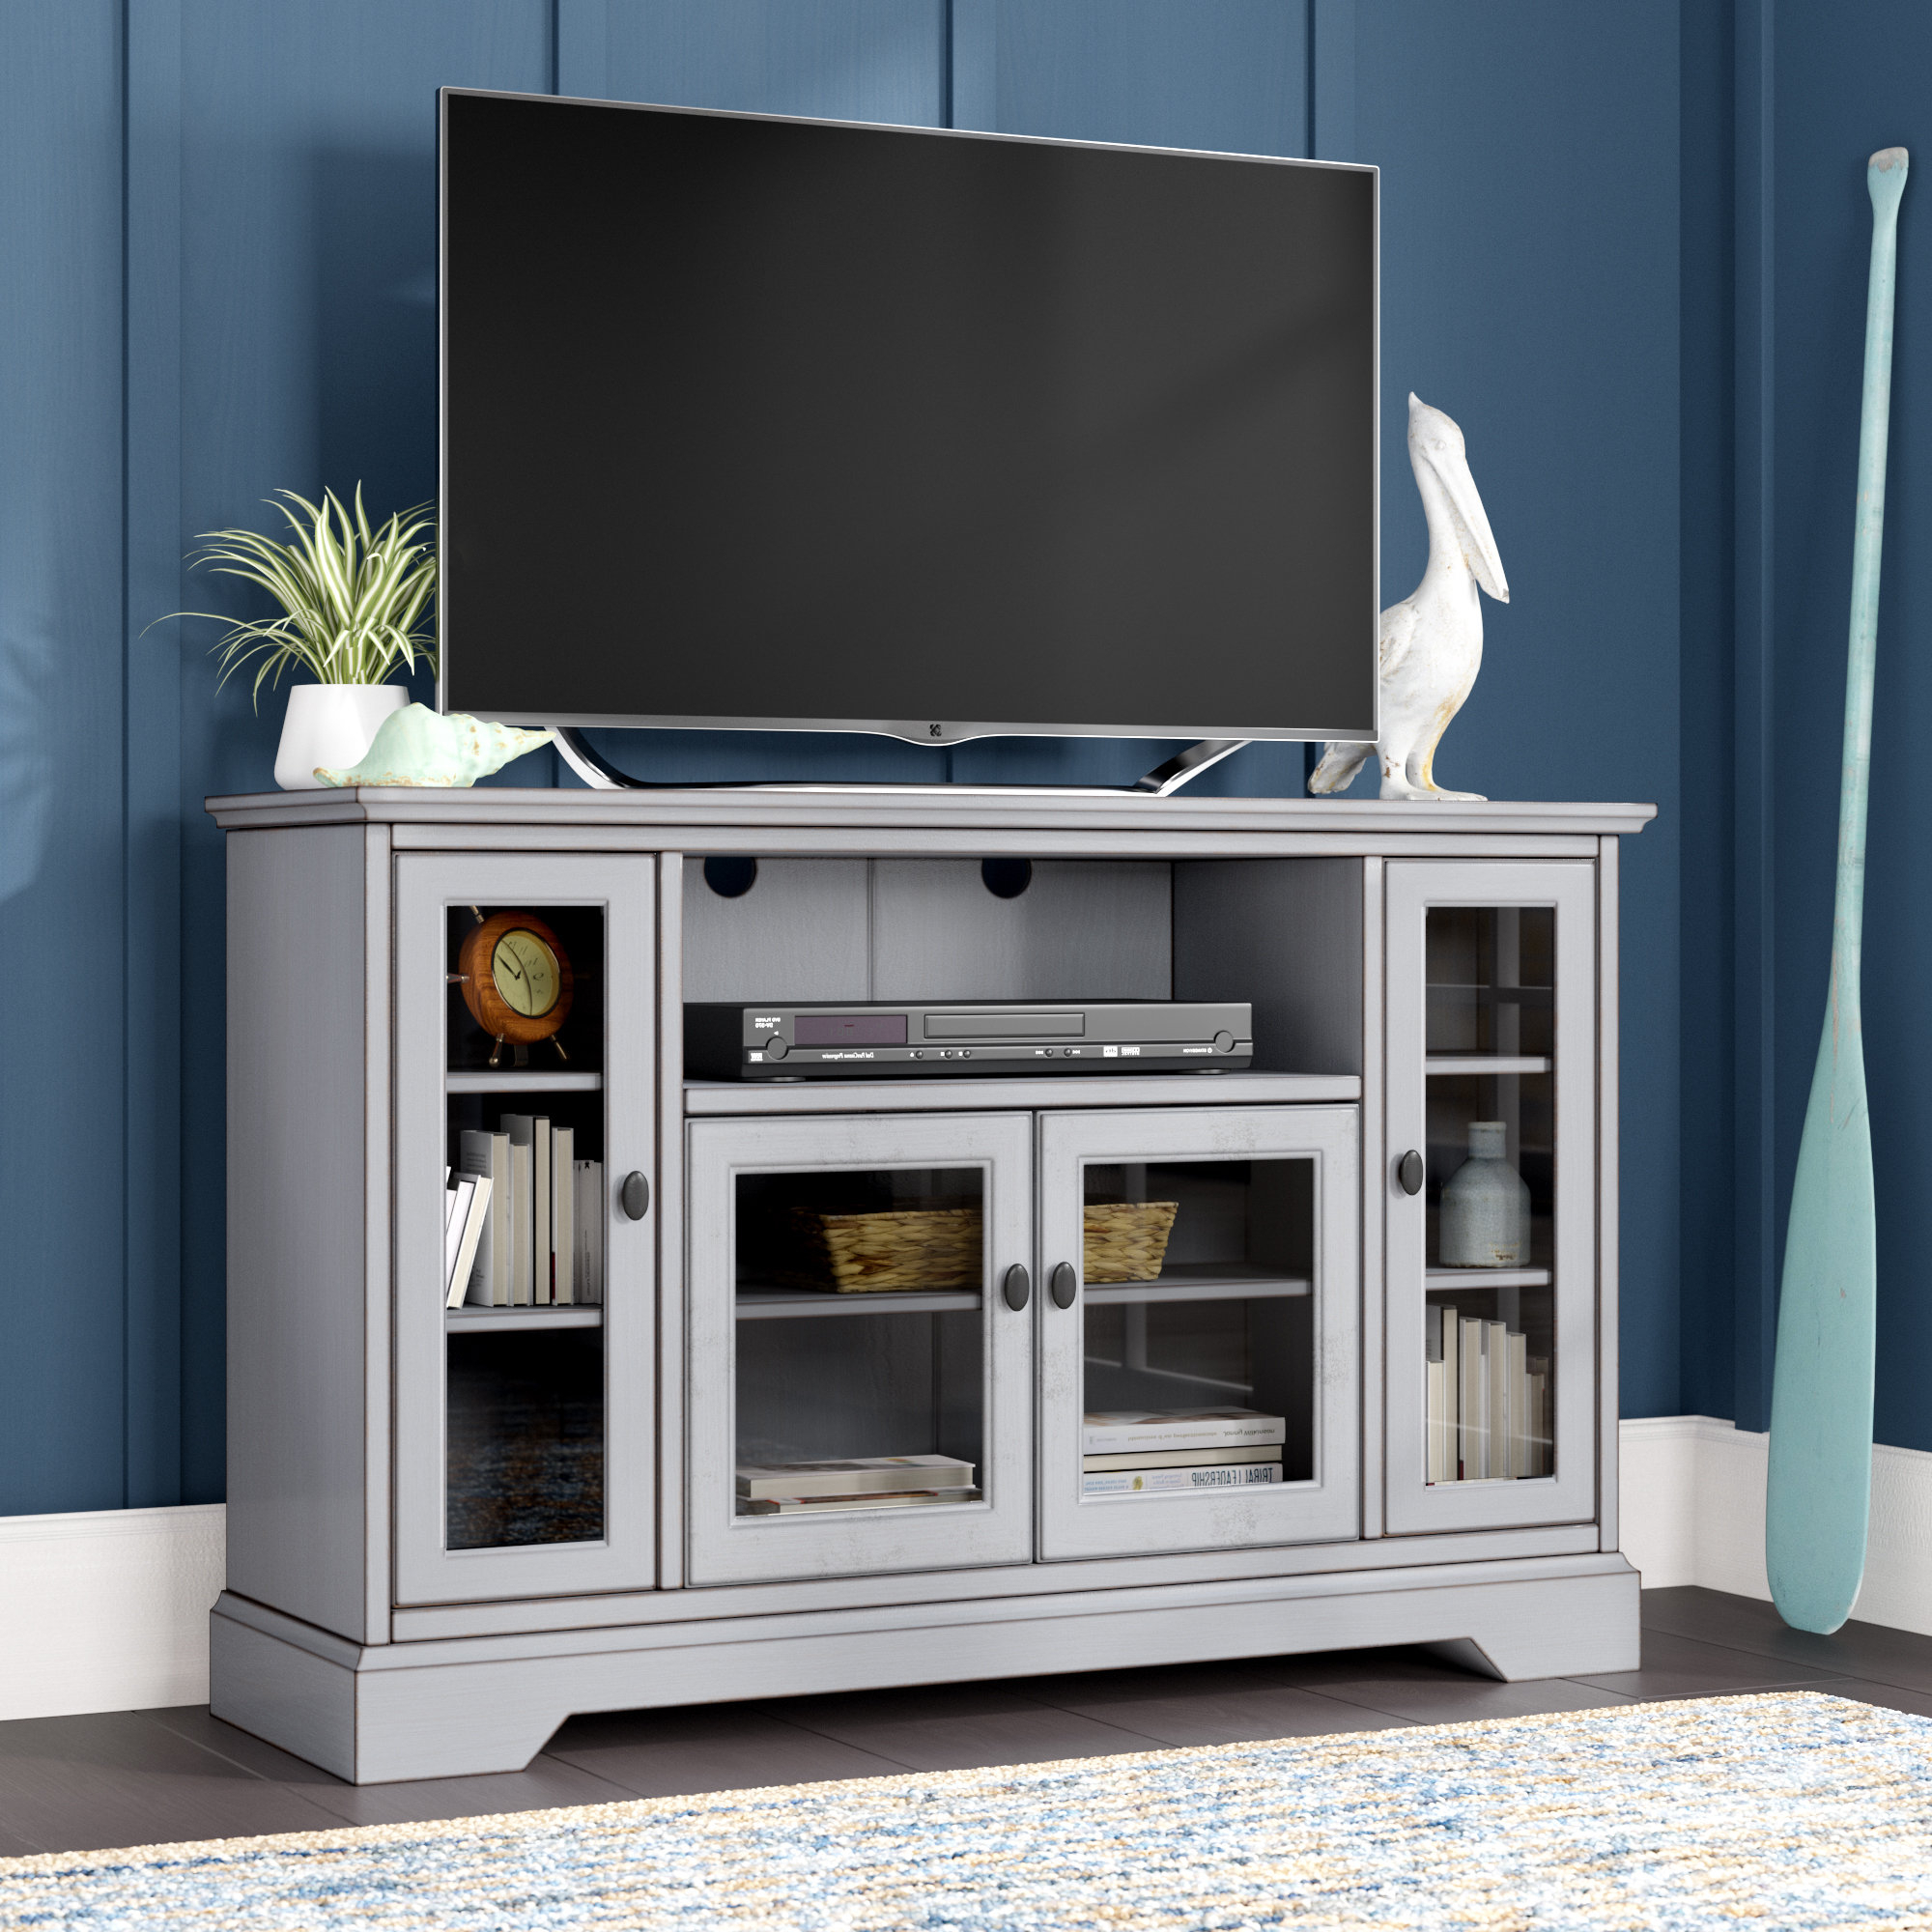 72 Inch Tv Stand | Wayfair For Laurent 60 Inch Tv Stands (Gallery 15 of 20)